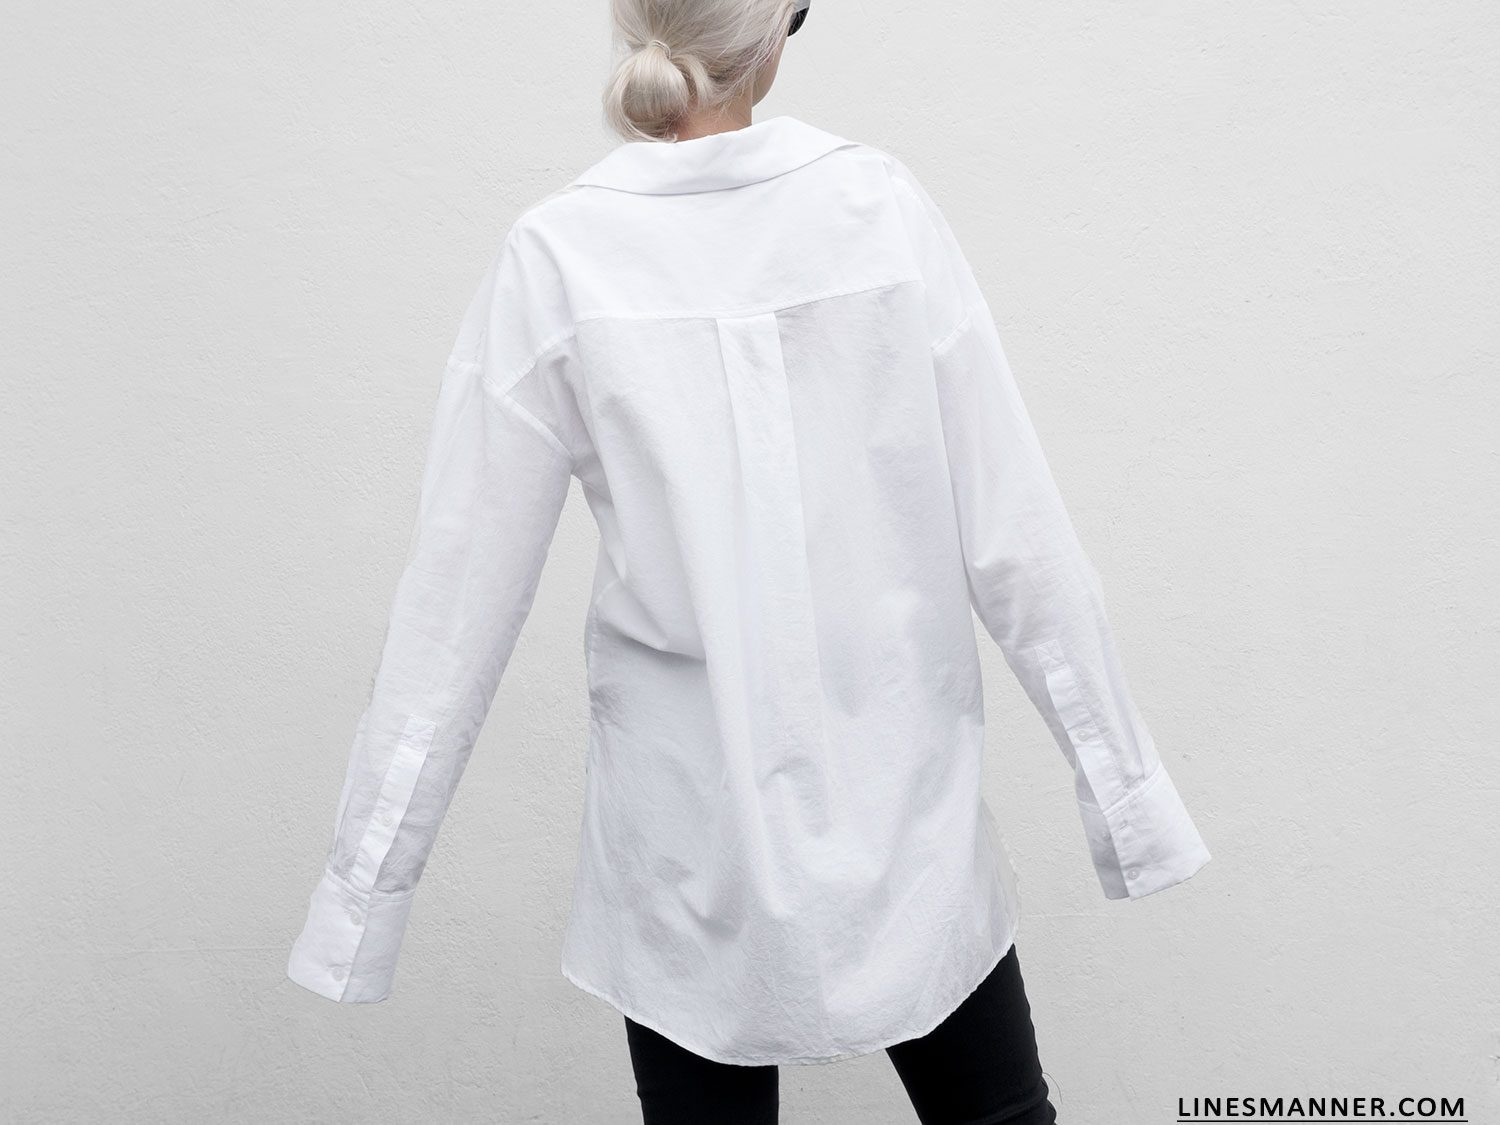 The White Shirt by COS